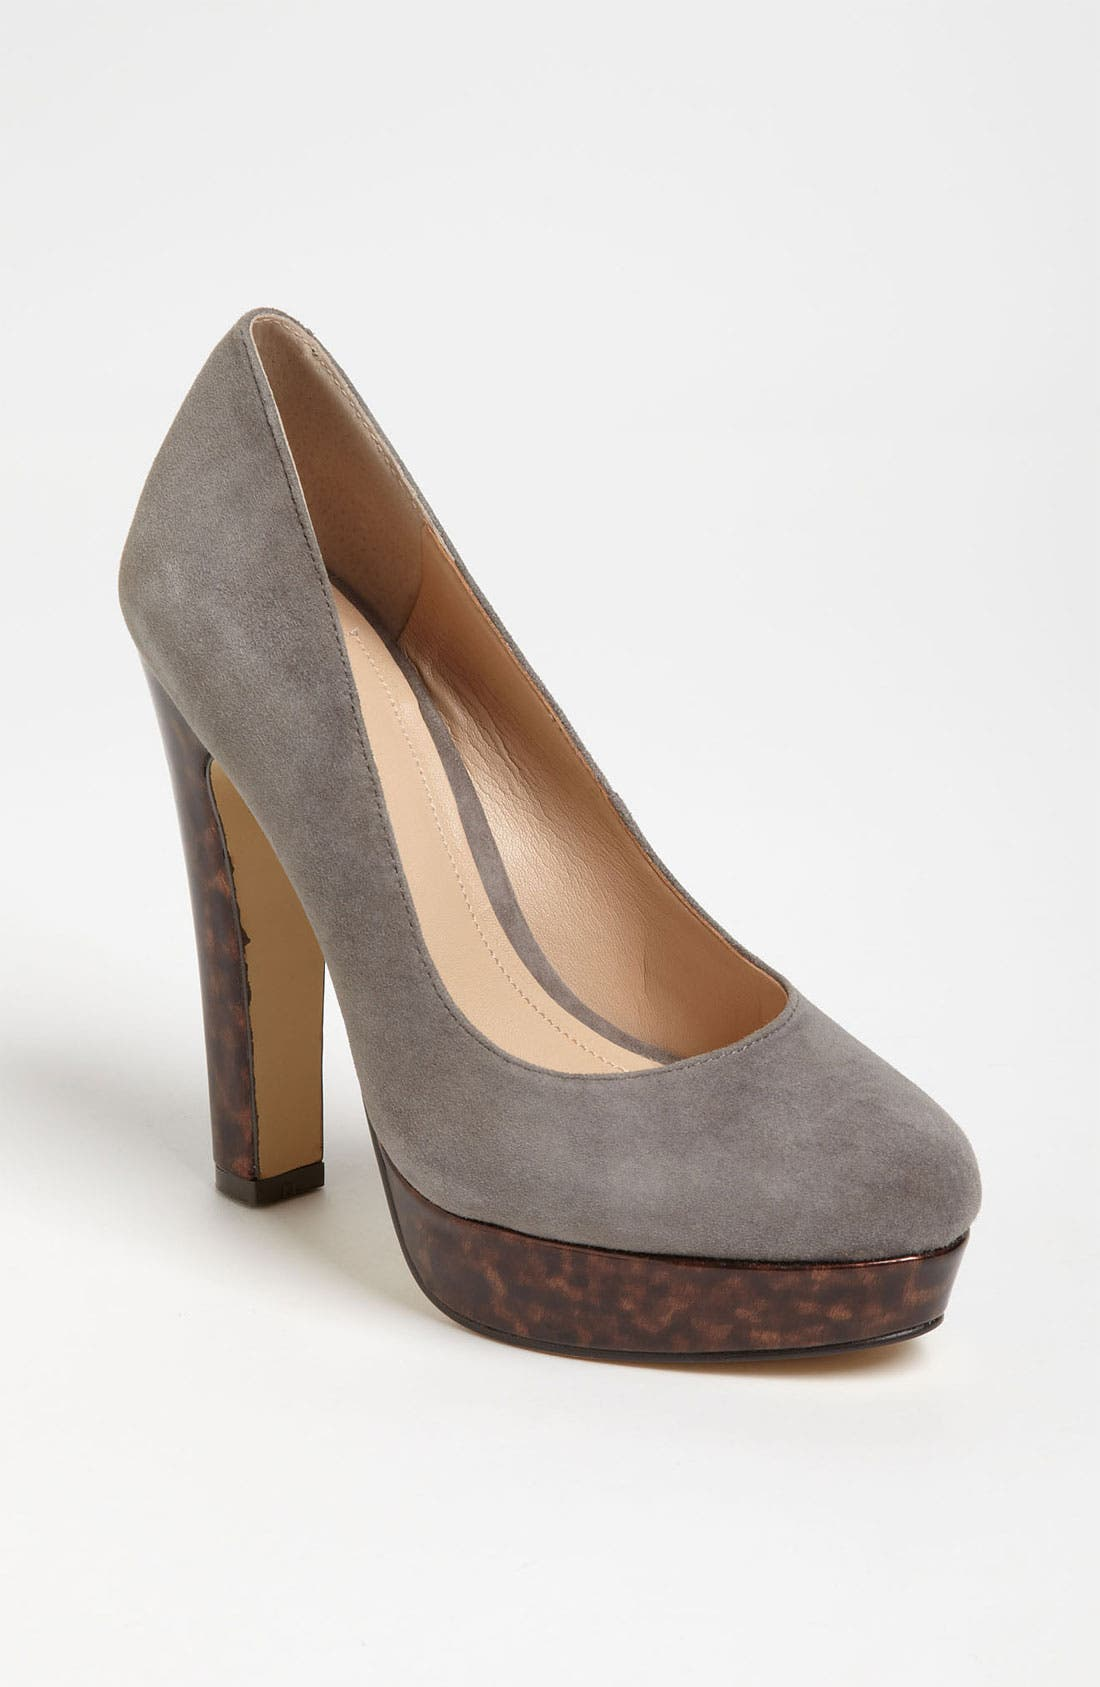 Alternate Image 1 Selected - Sole Society 'Marcella' Pump